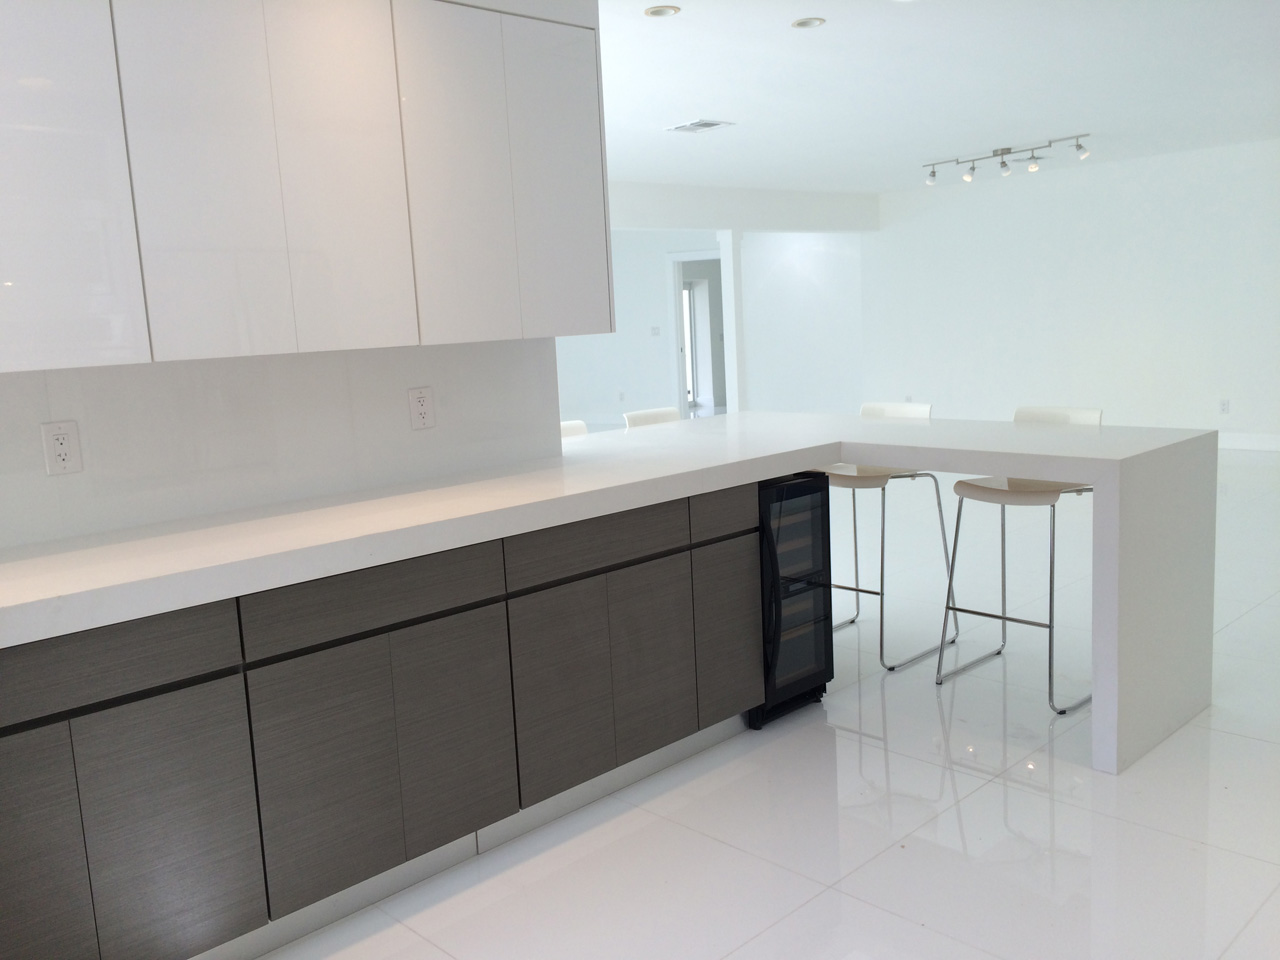 quartz countertops with waterfall effect and wine cooler. keystone point home for sale